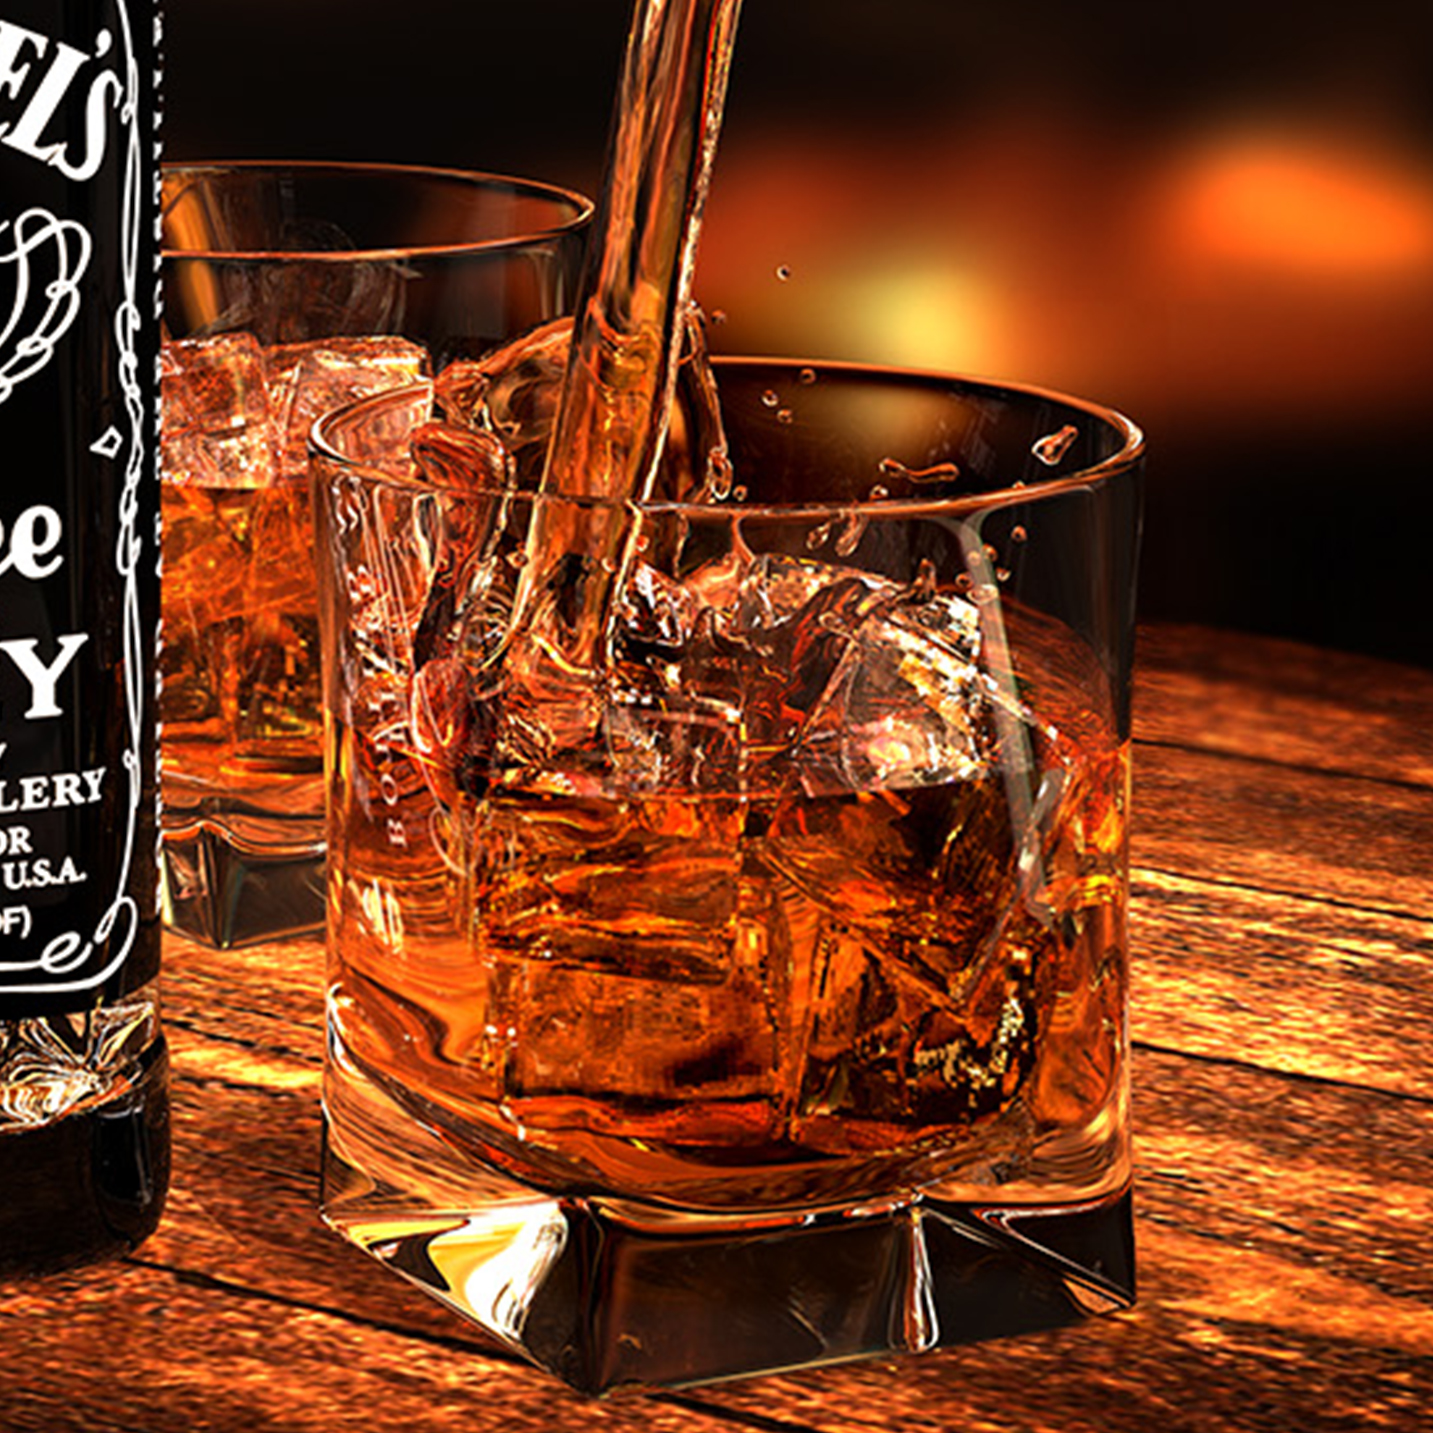 HOME PAGE - TEMPLATE-Recovered_0011_60.Port - JD Whiskey v2.jpg